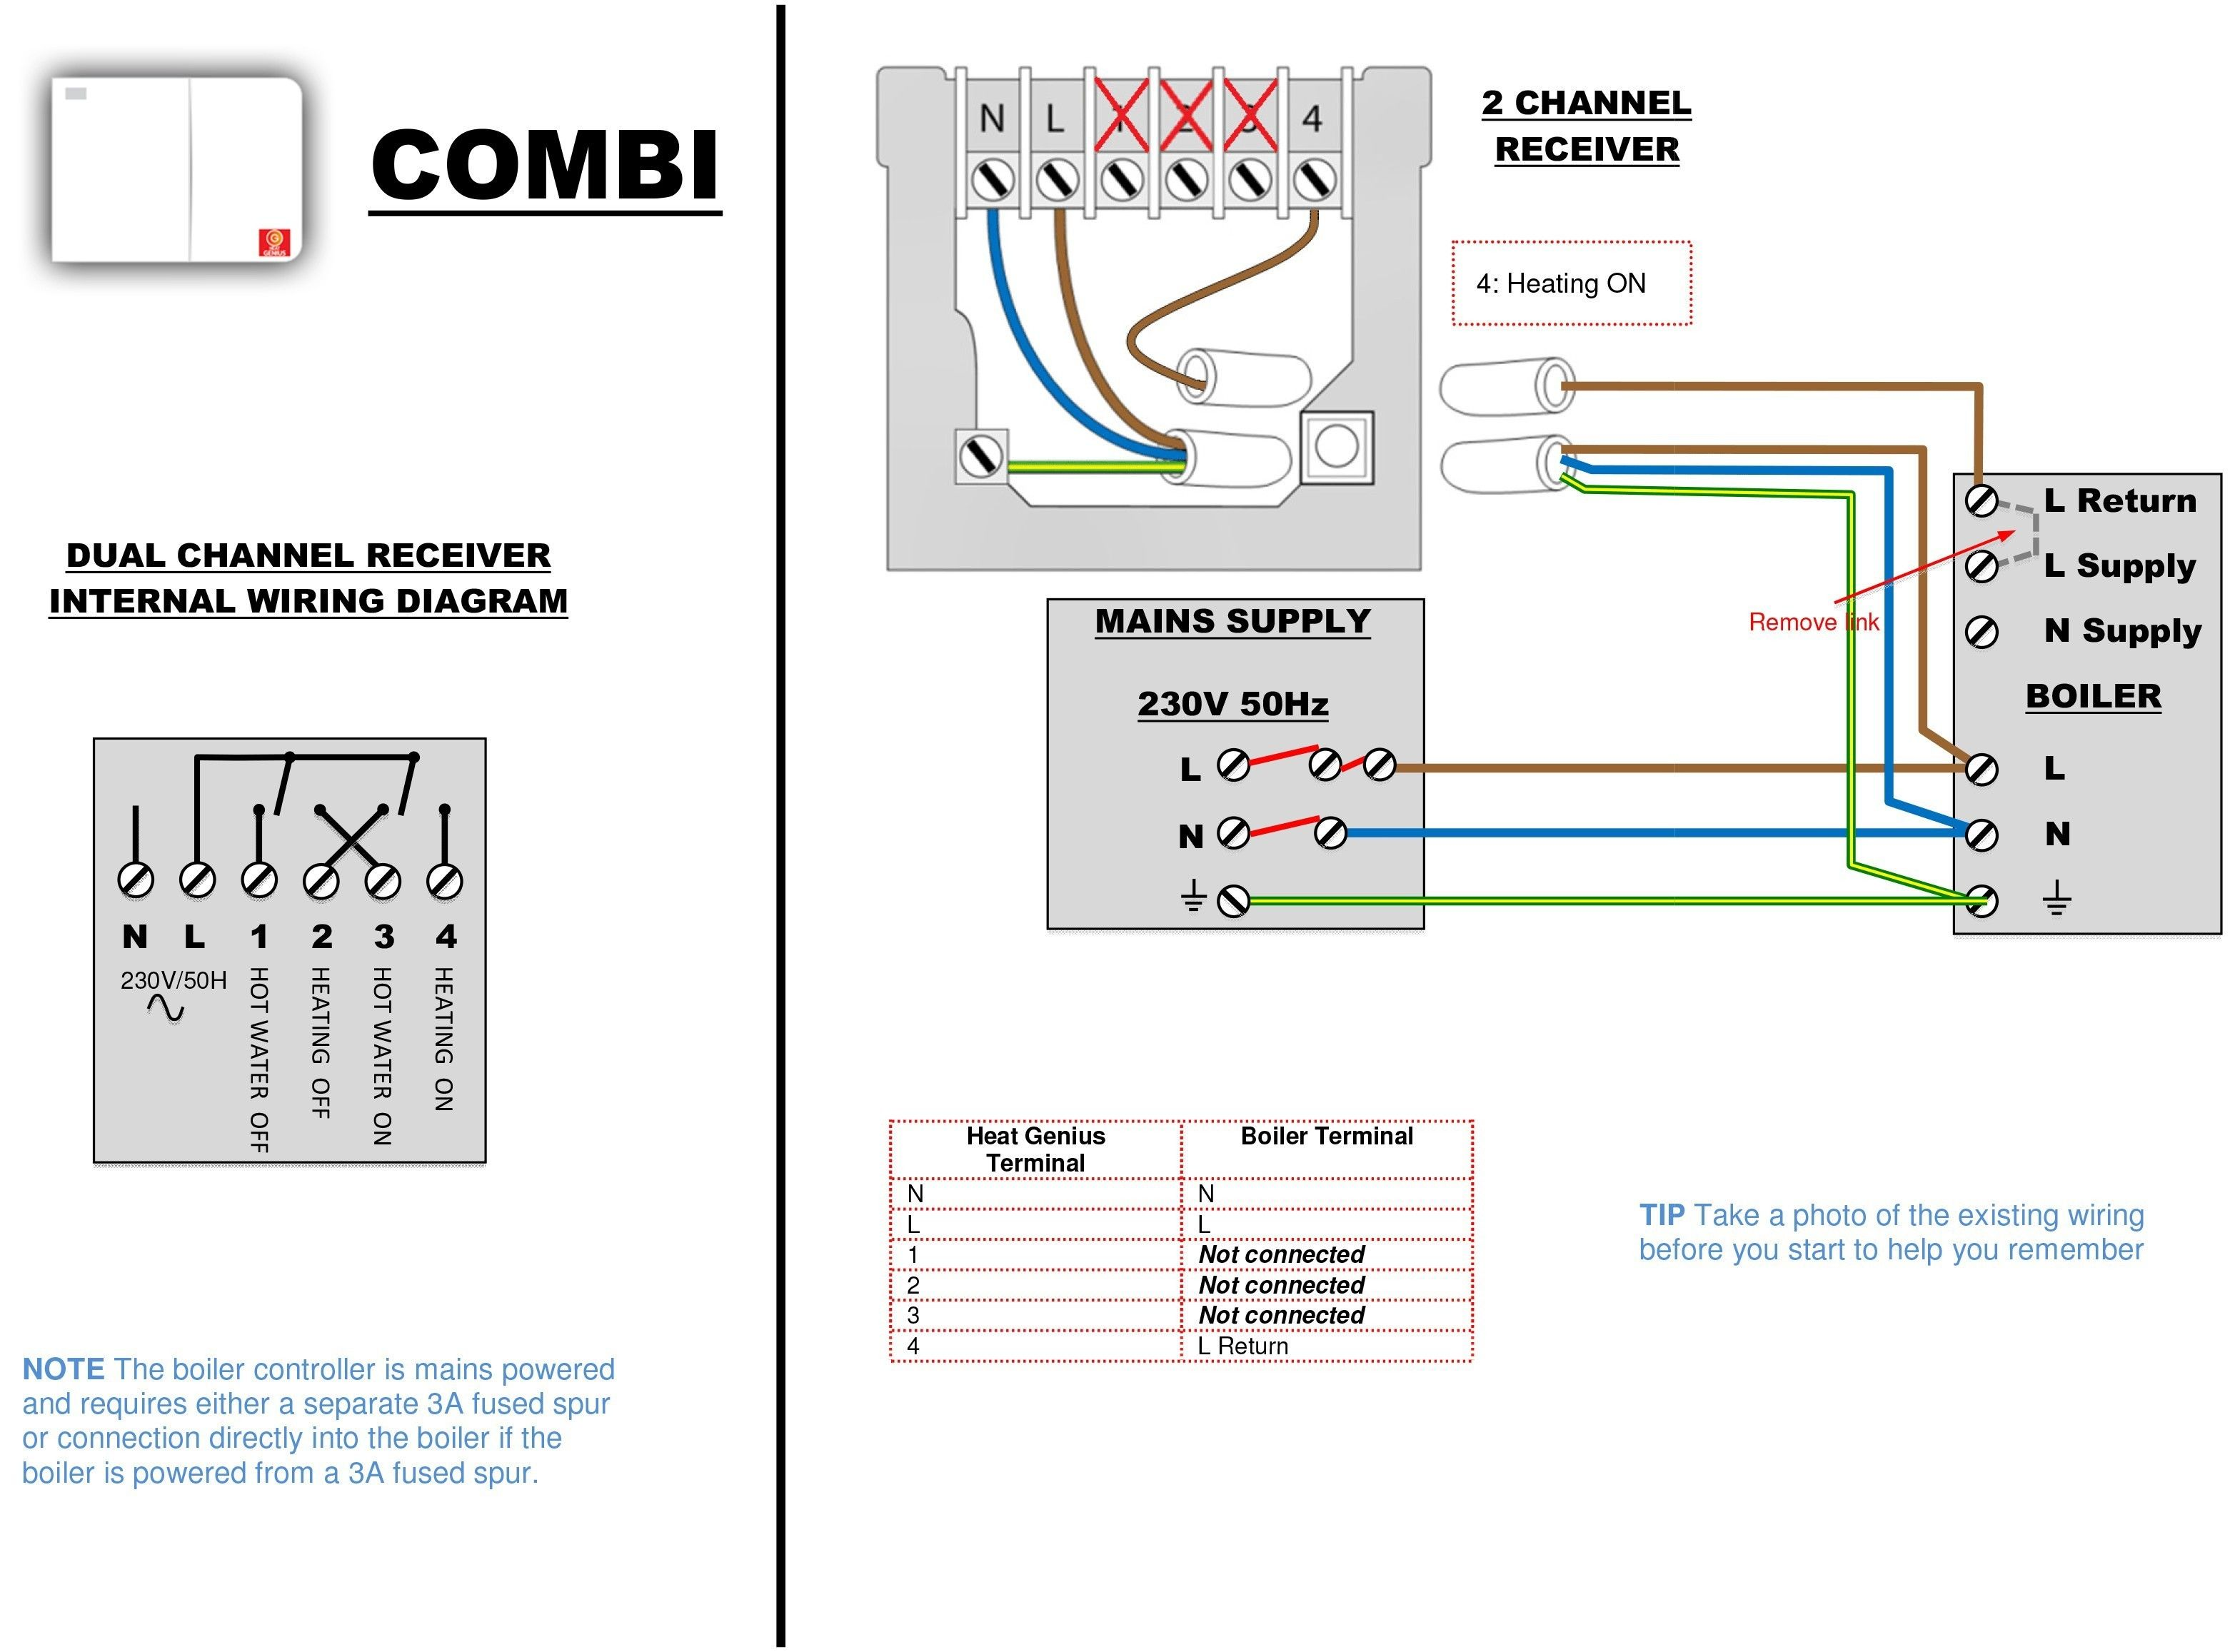 New Wiring Diagram For Combination Boiler Diagram Diagramtemplate Diagramsample